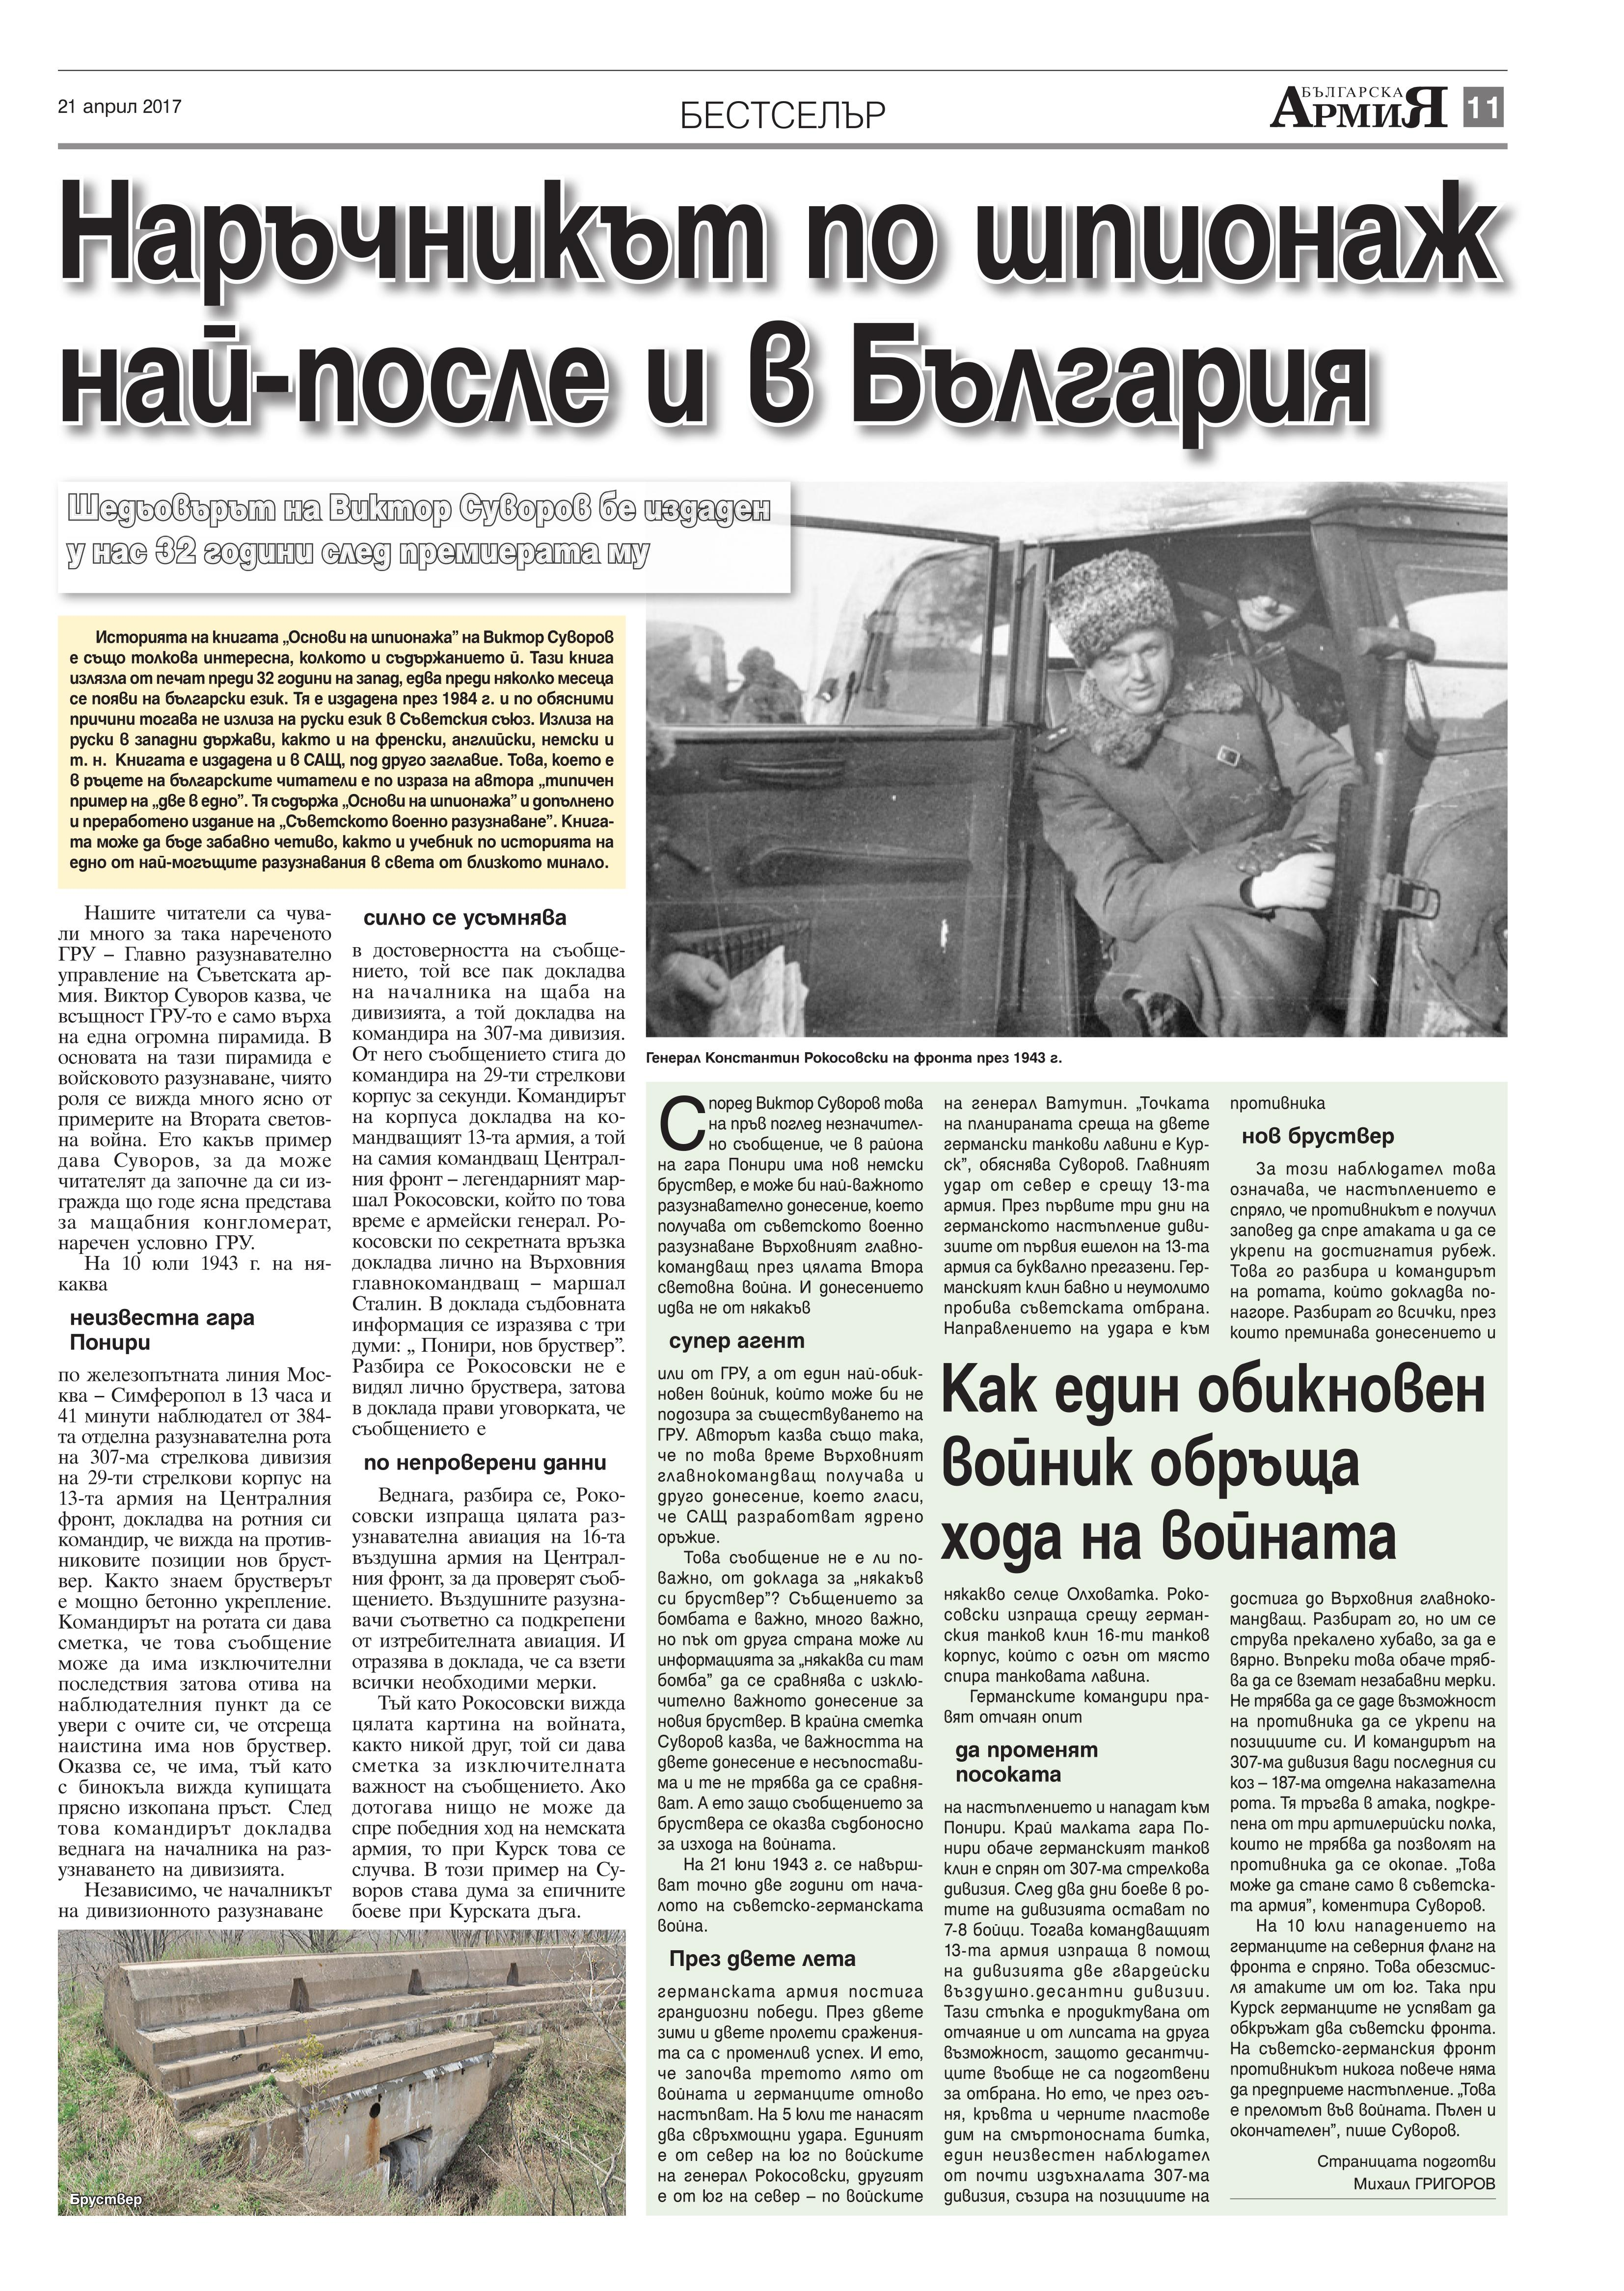 http://armymedia.bg/wp-content/uploads/2015/06/11.page1_-19.jpg